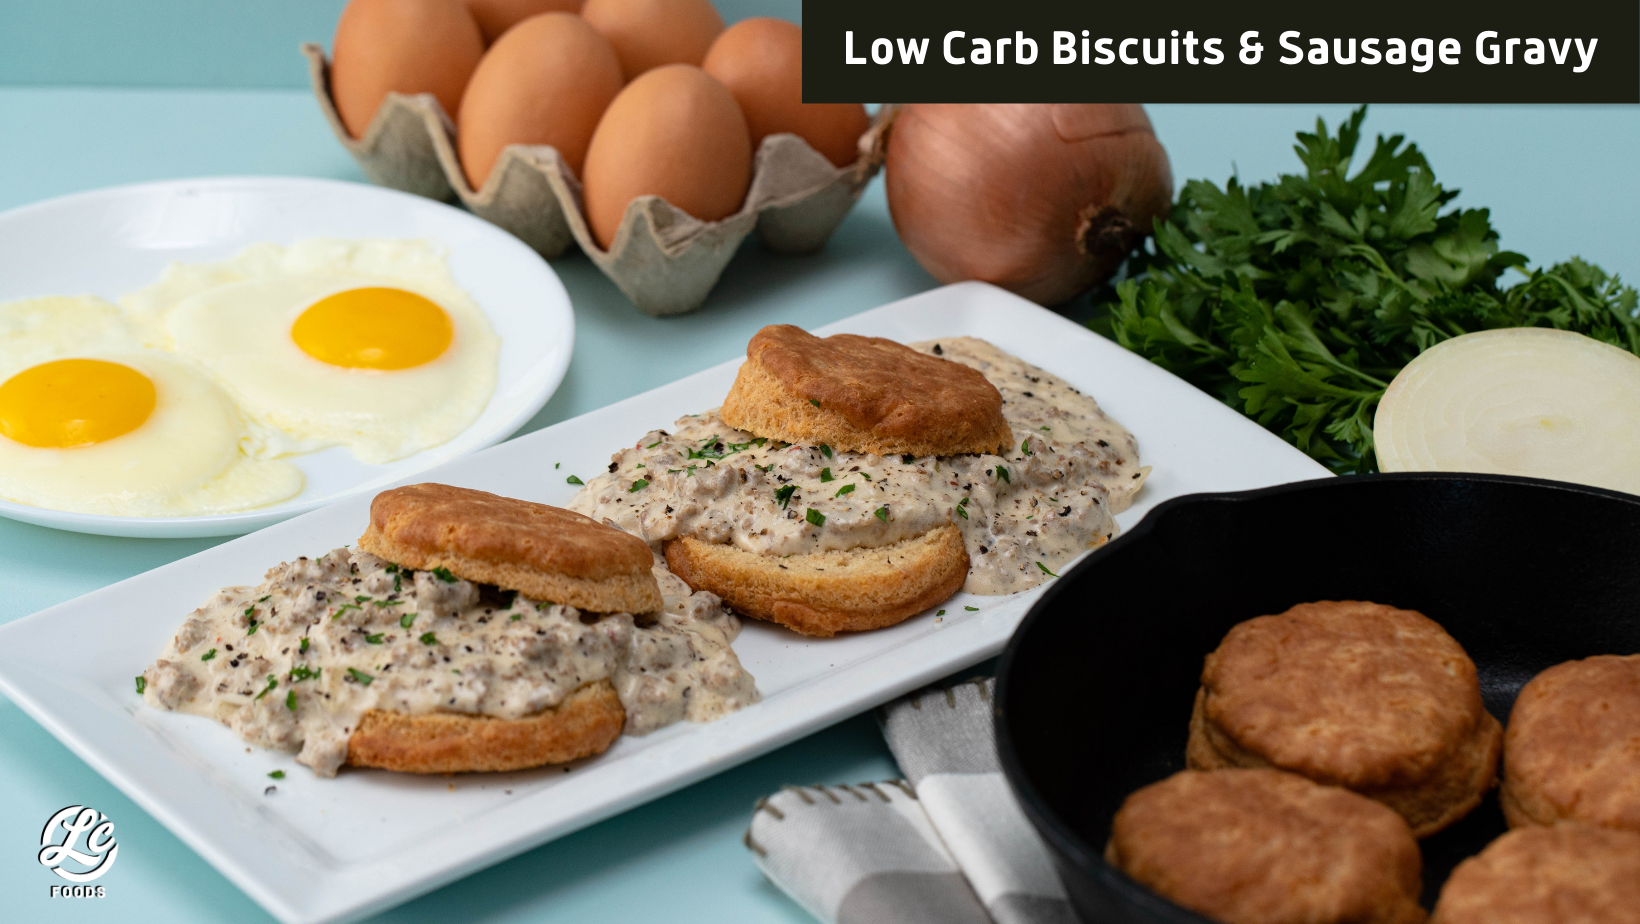 Thumbnail for Low Carb Biscuits and Sausage Gravy